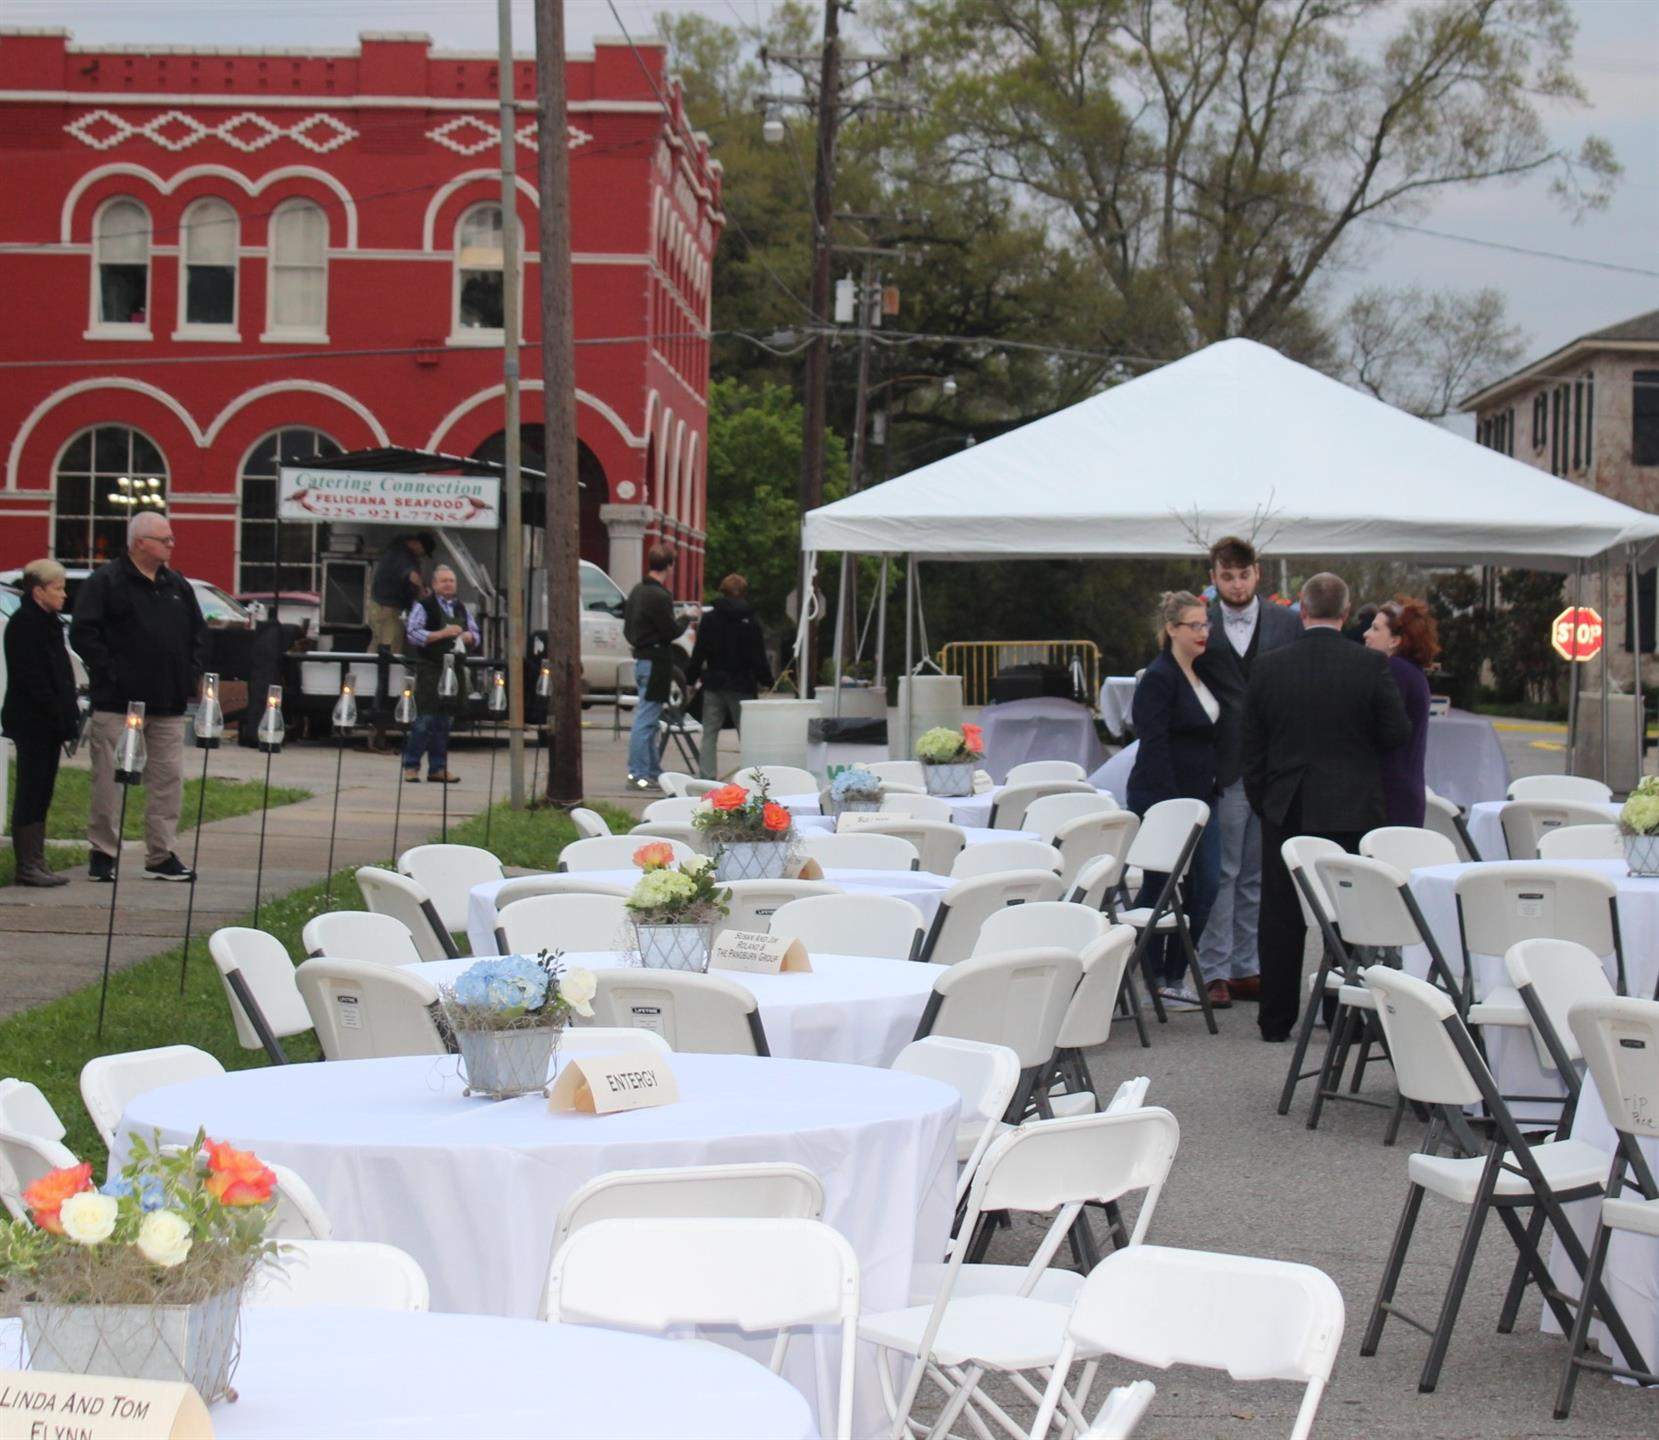 tables and chairs set up for an outdoor event